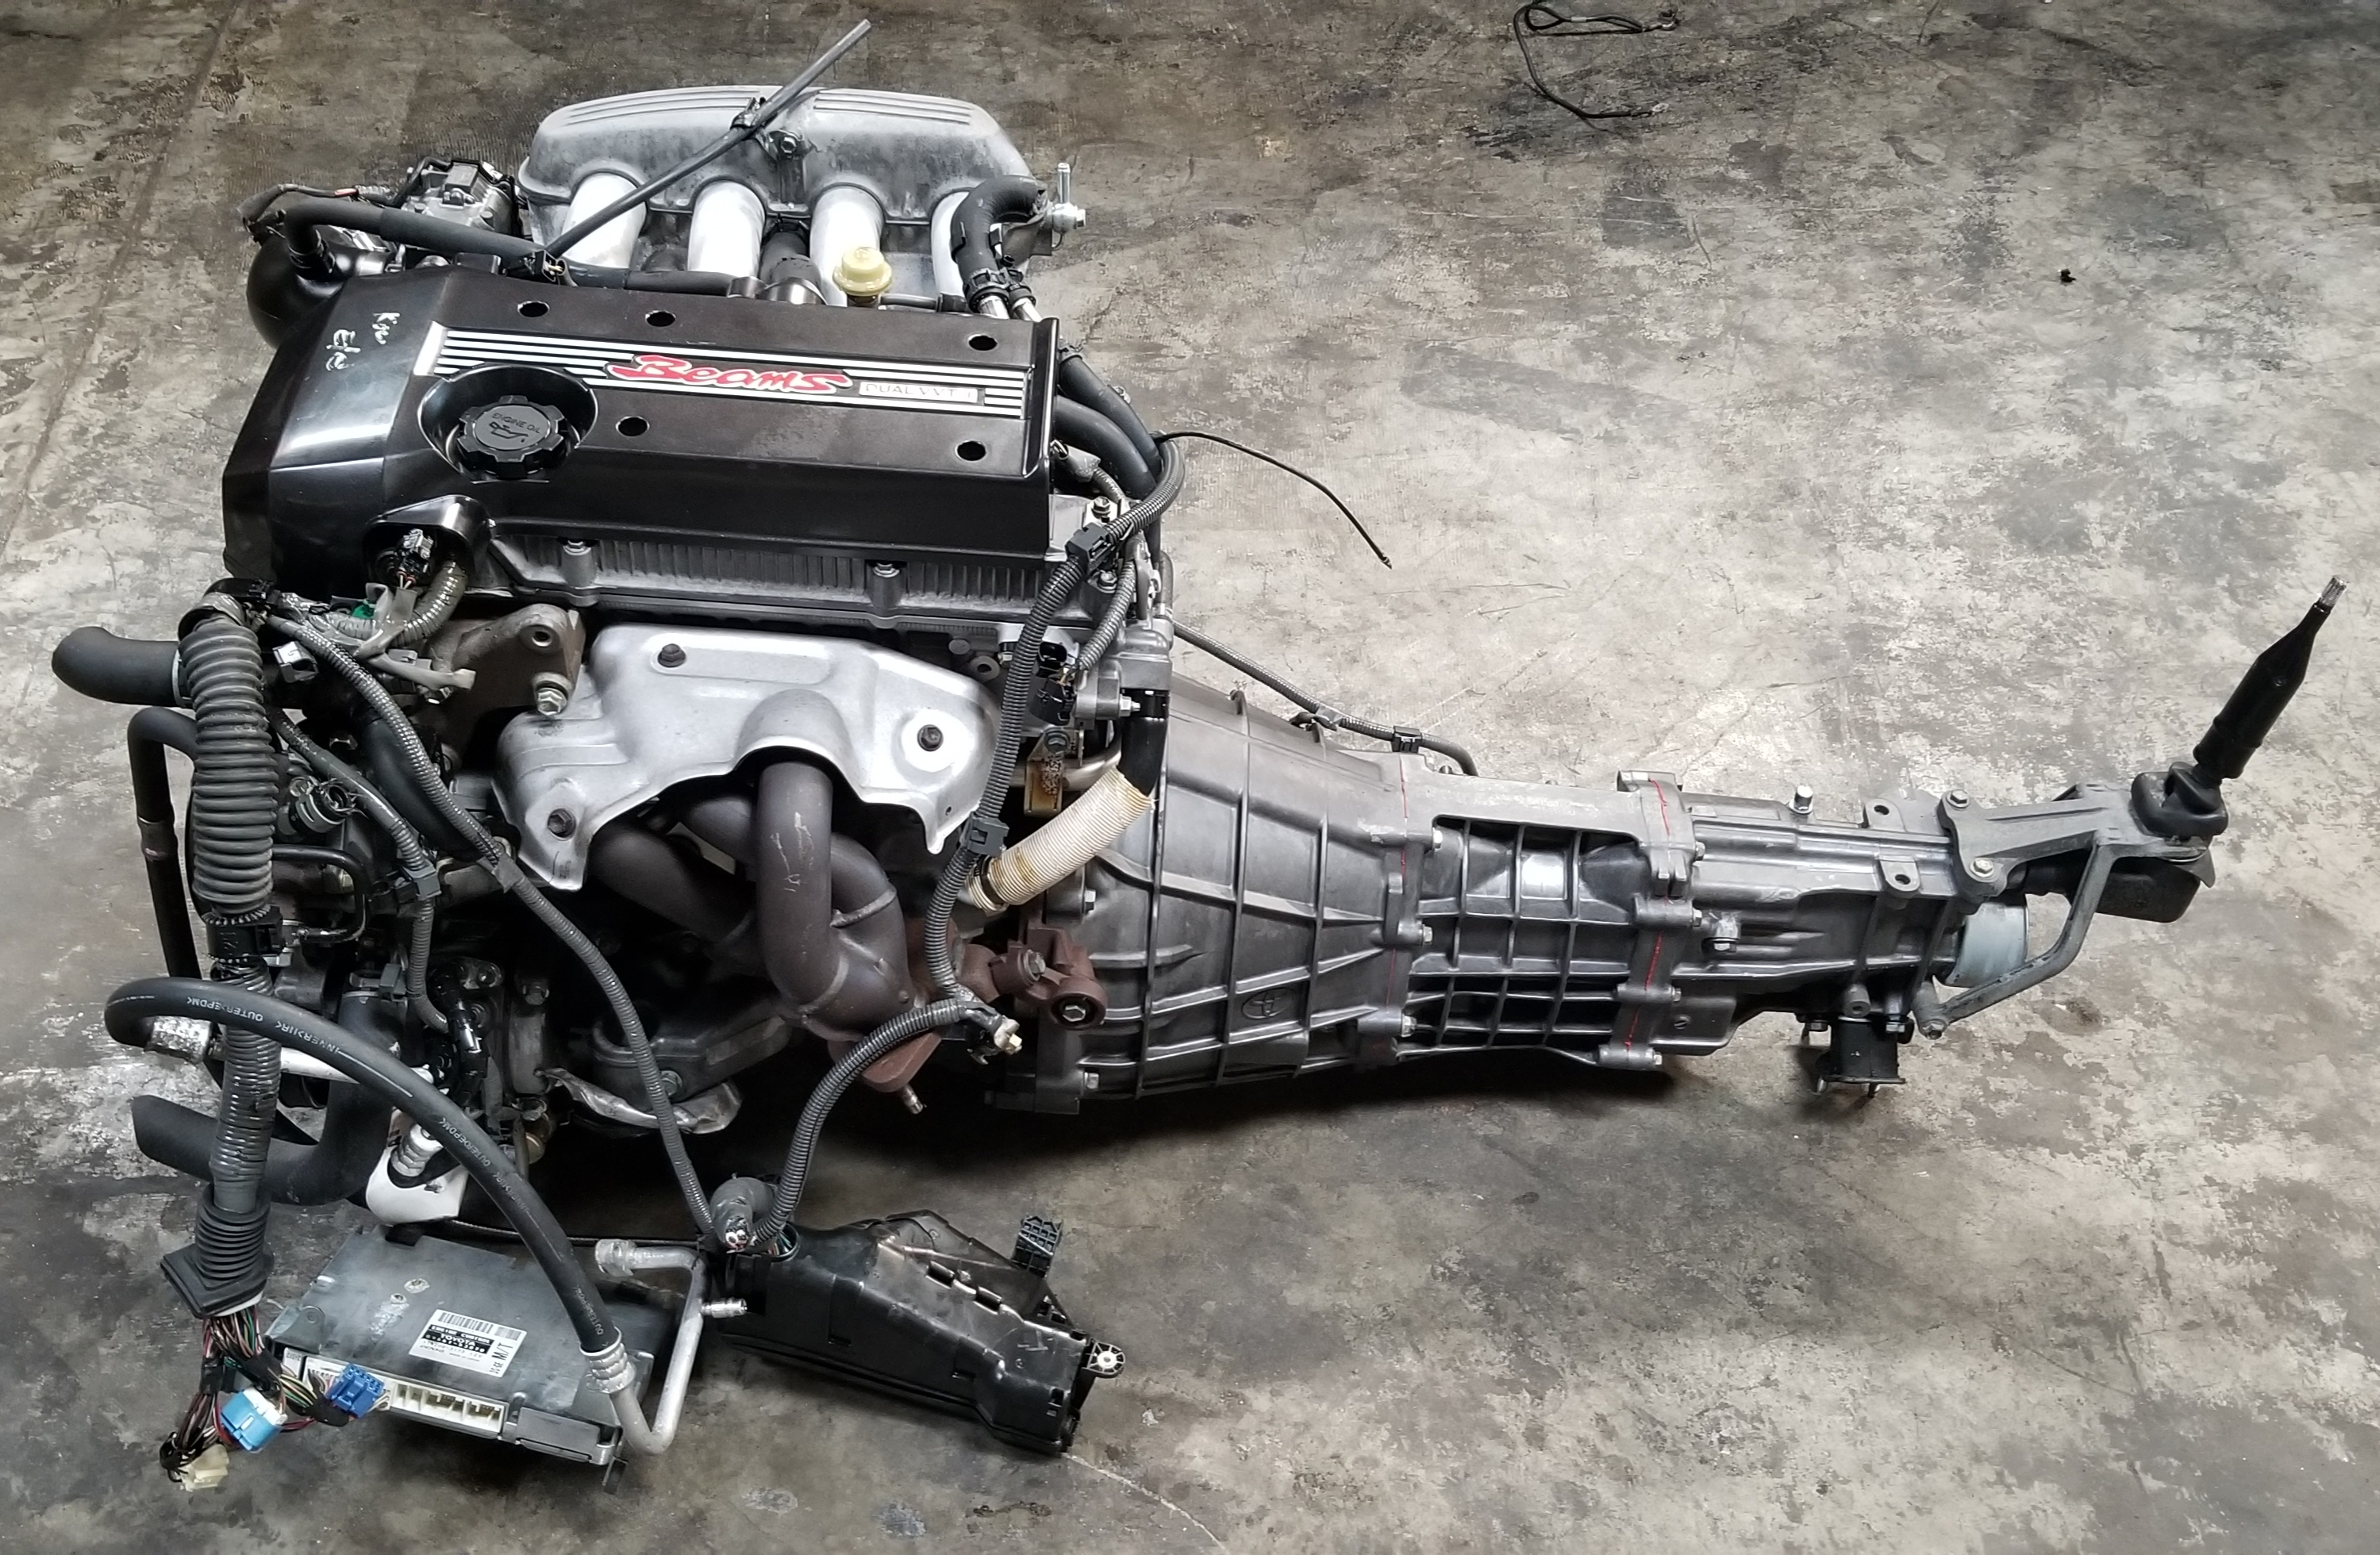 Genuine Toyota Parts >> BEAMS 3SGE 2.0L Dual VVTi Engine with RWD 6 speed Manual Transmission Complete Swap JDM 1998 ...